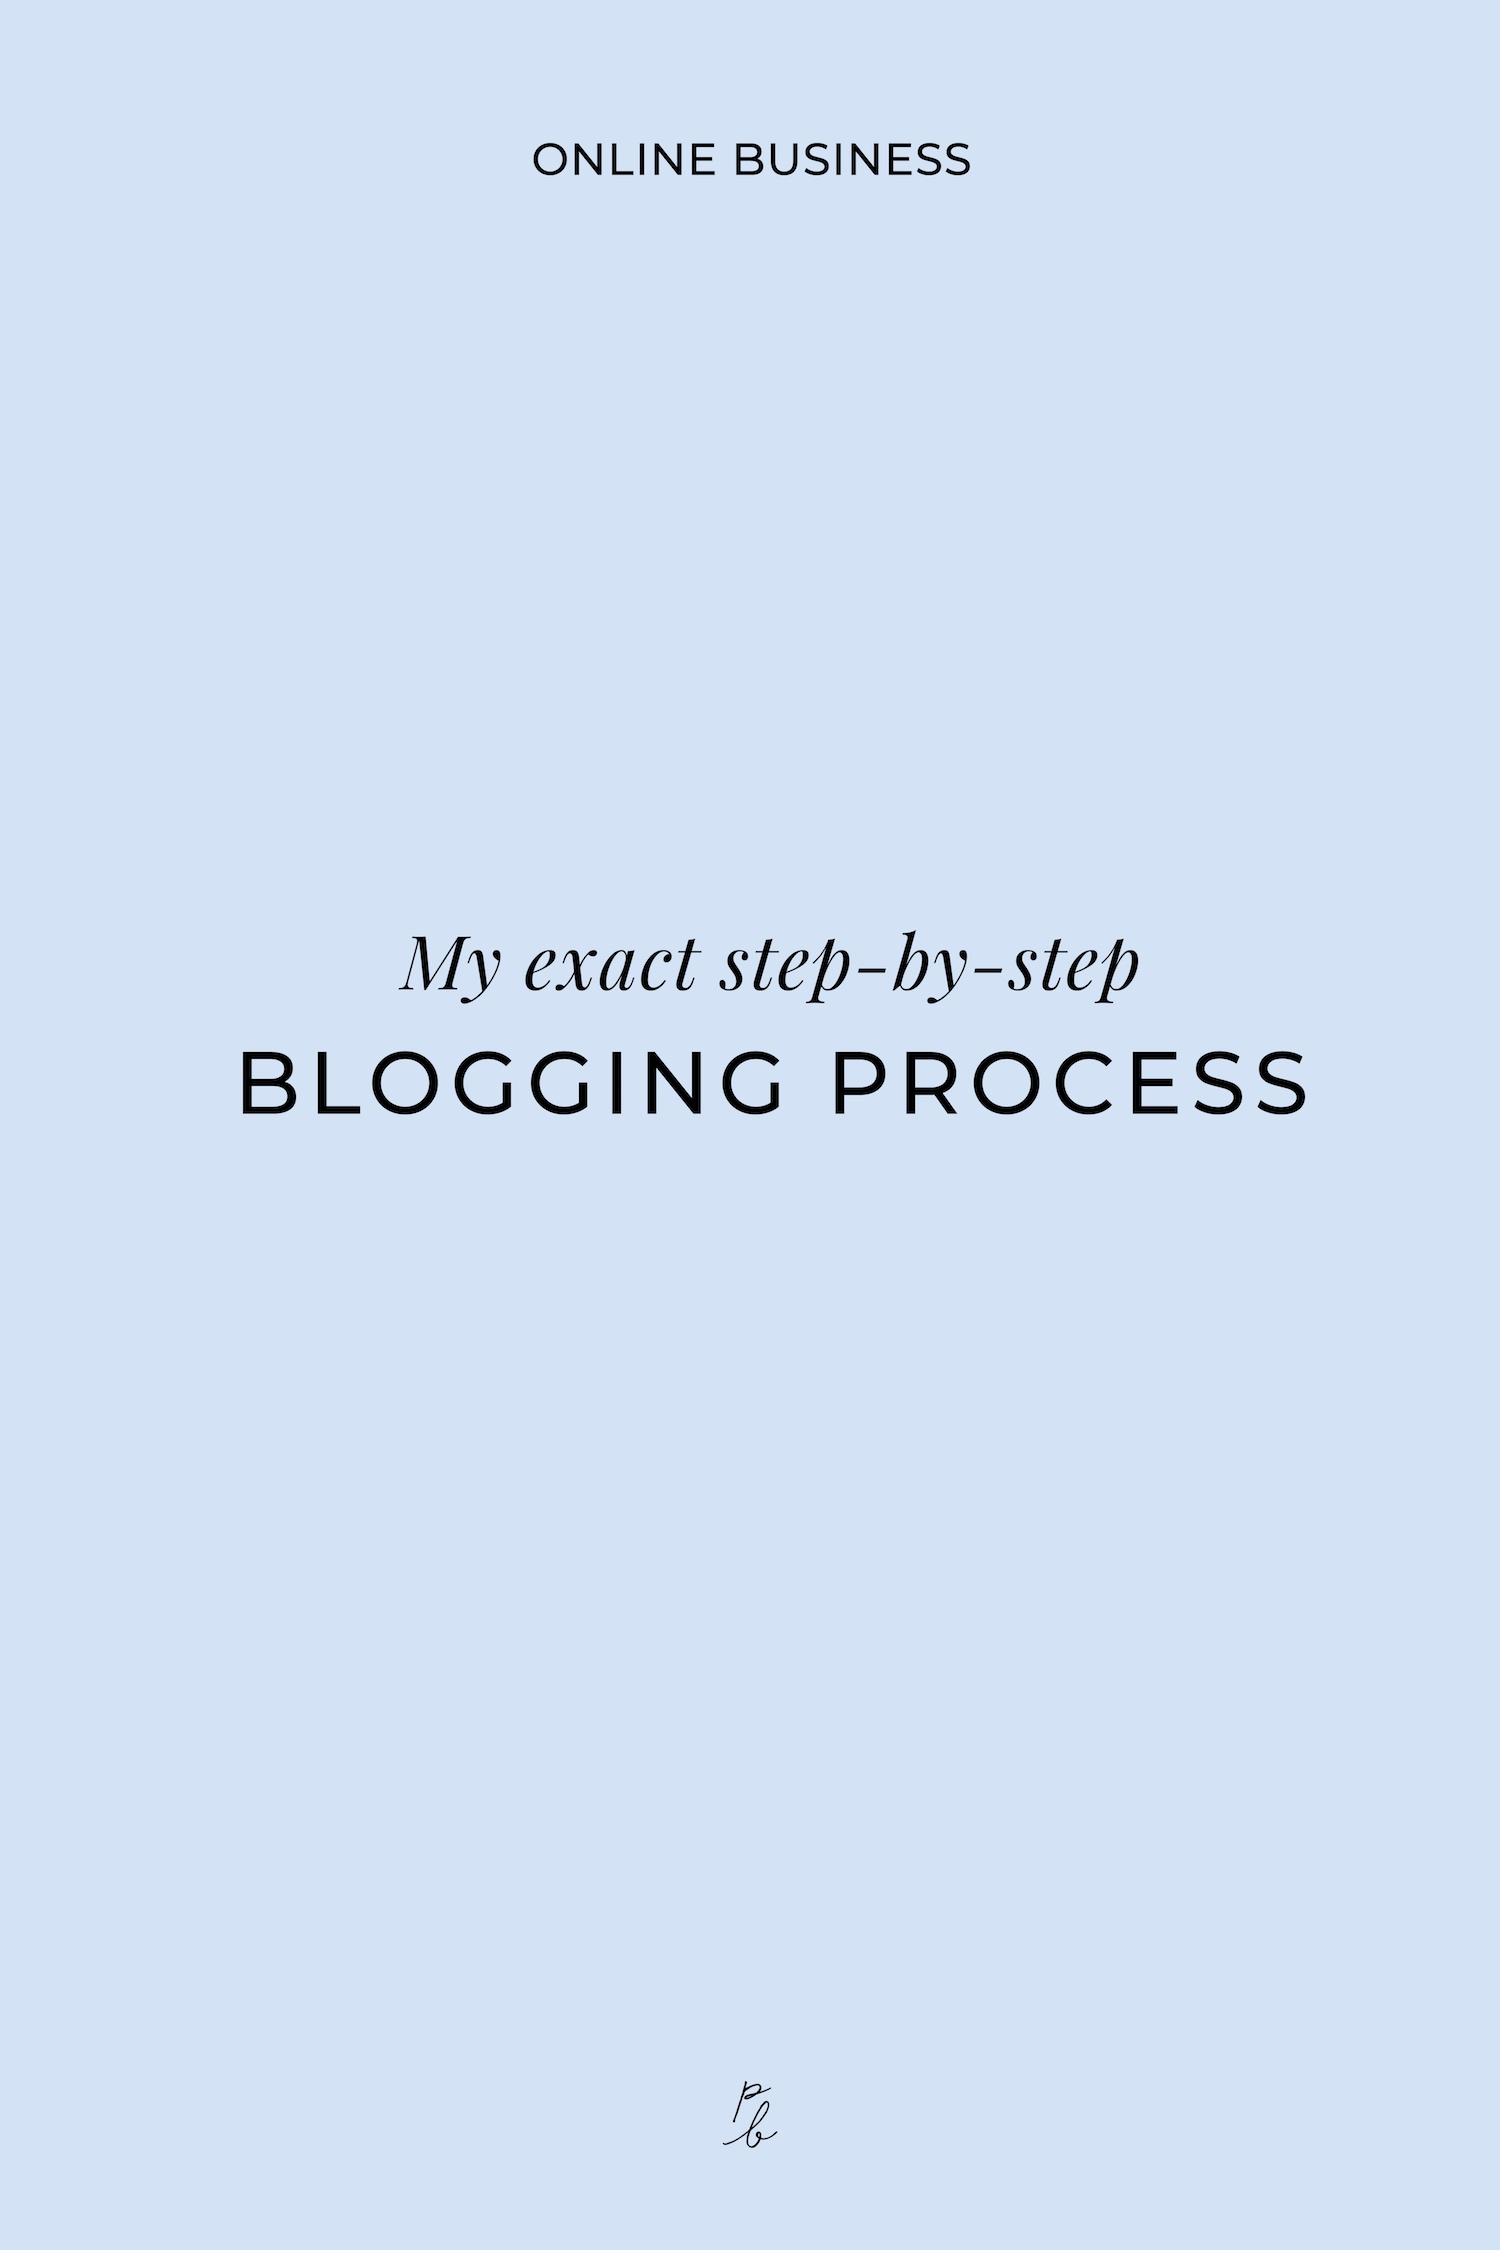 My exact step-by-step blogging process-03.jpeg